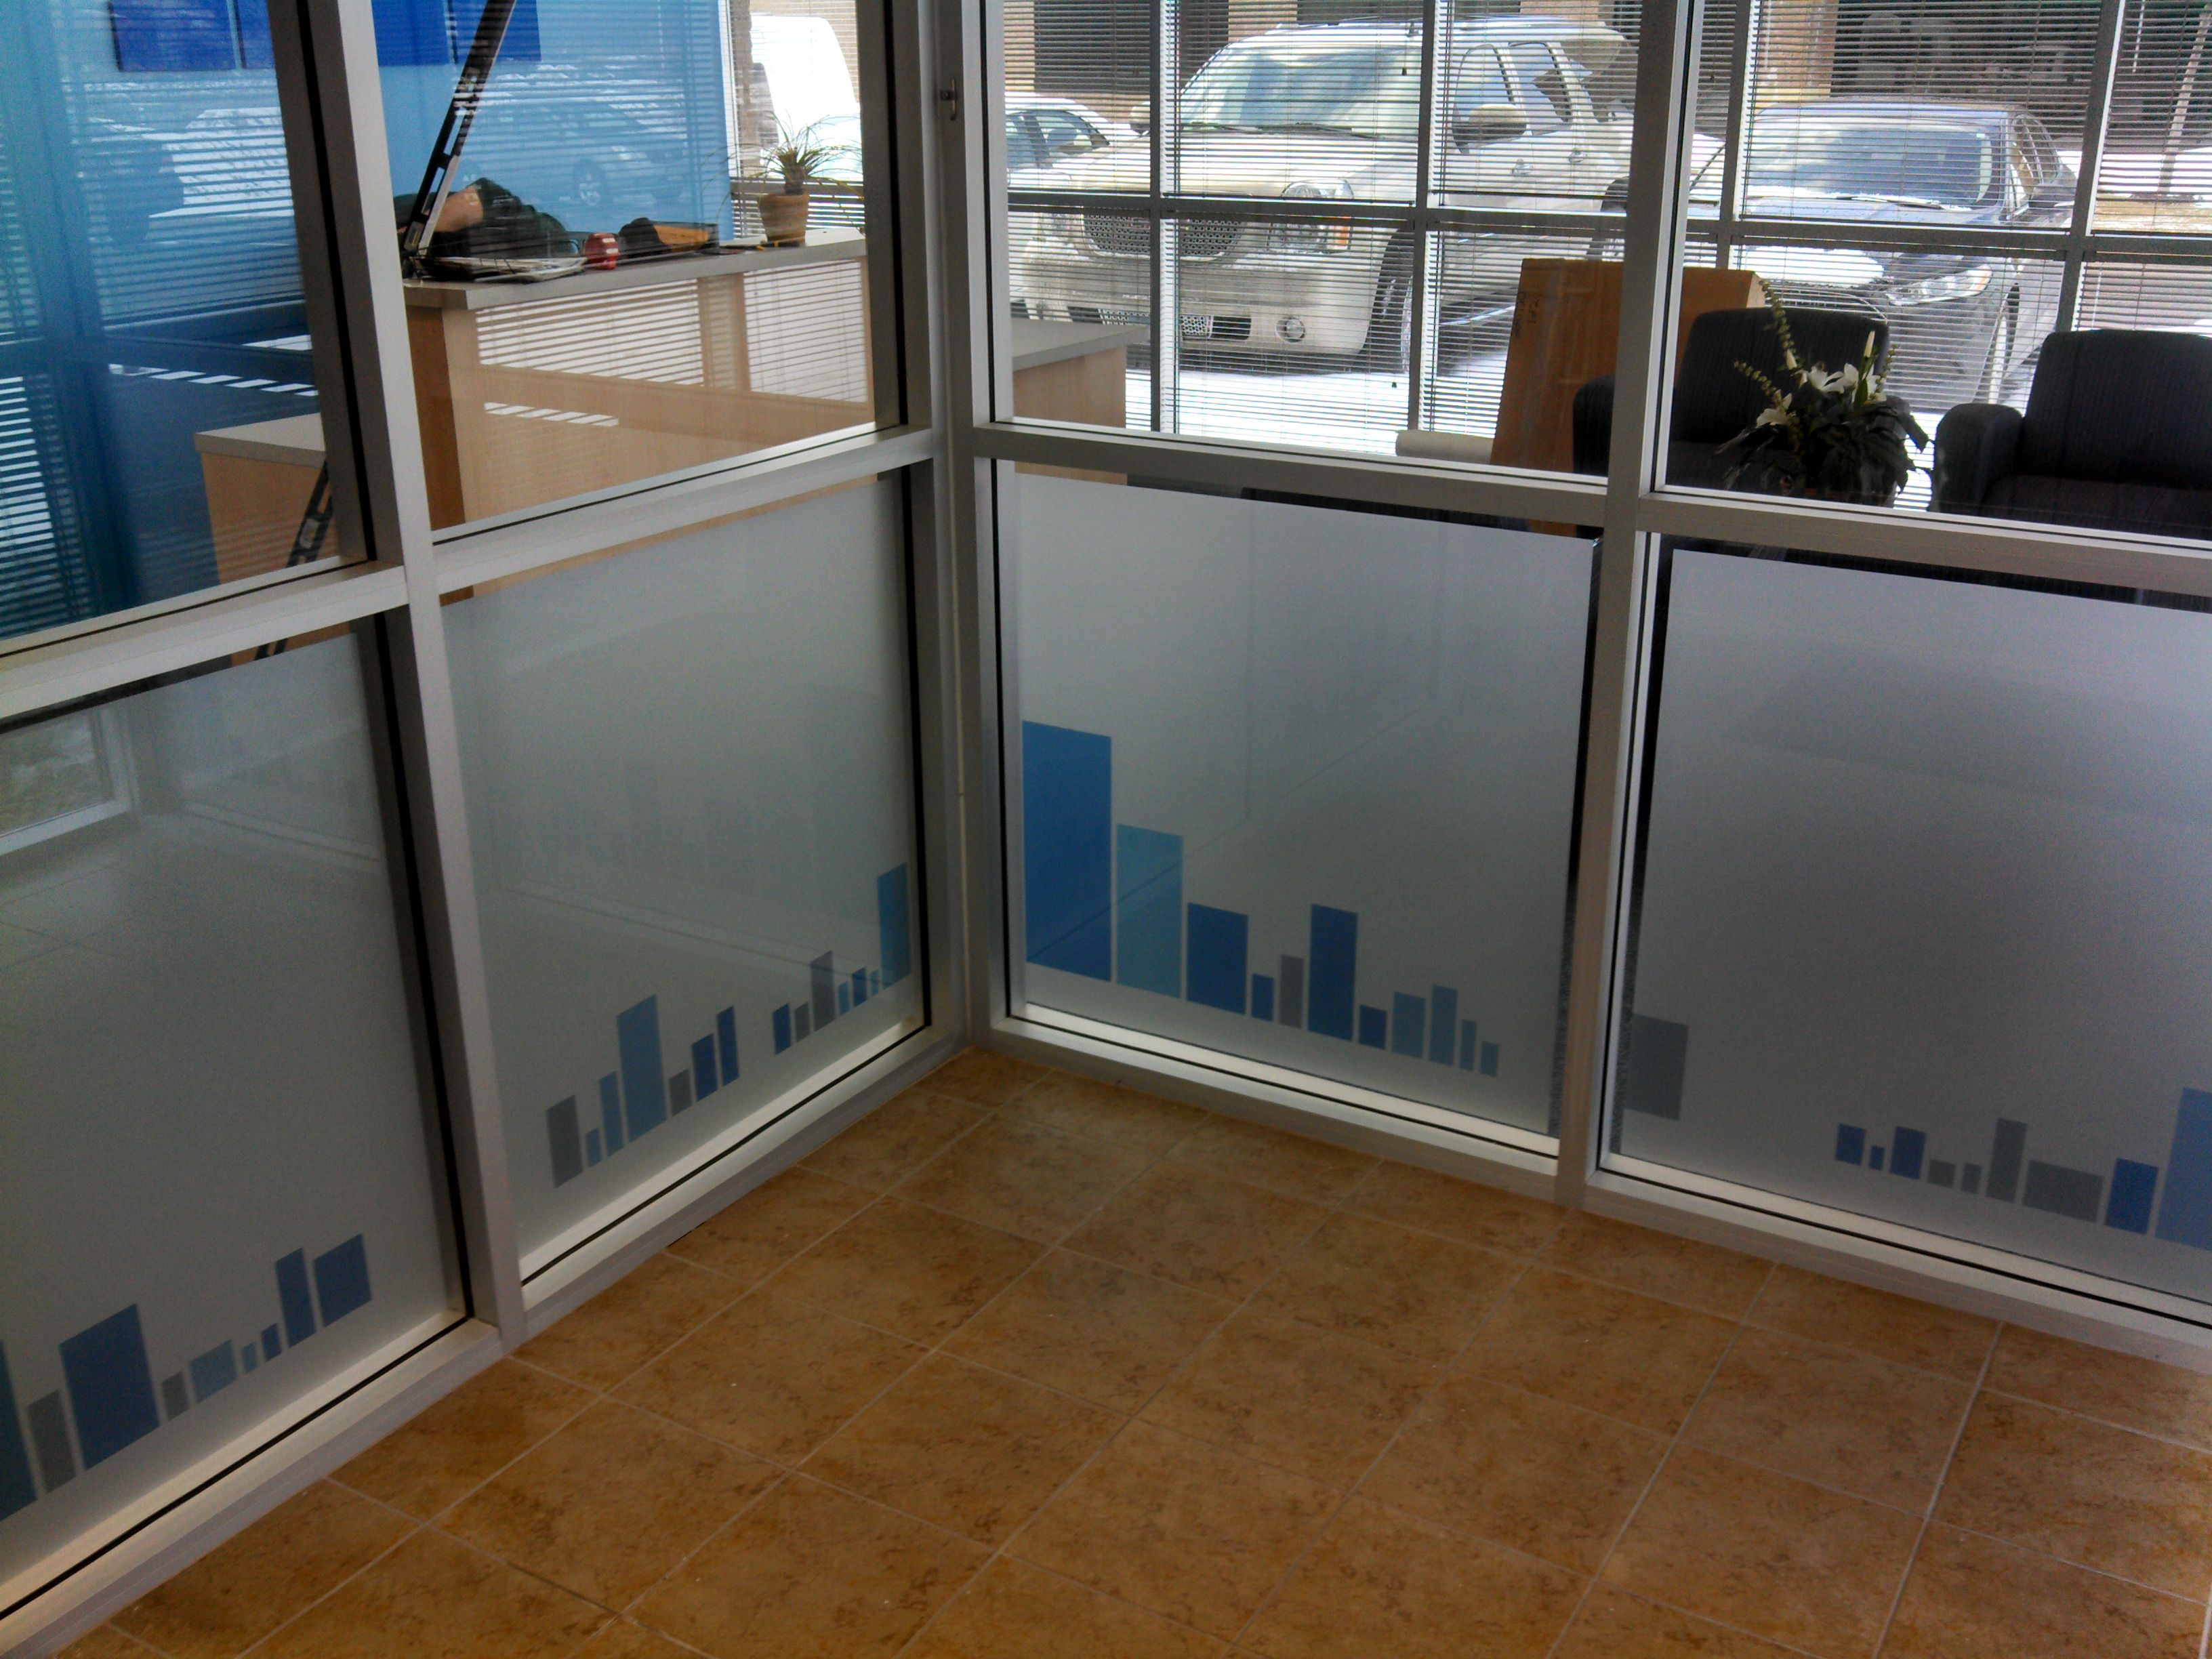 This Frosted Window displays the logo on the entry windows for the